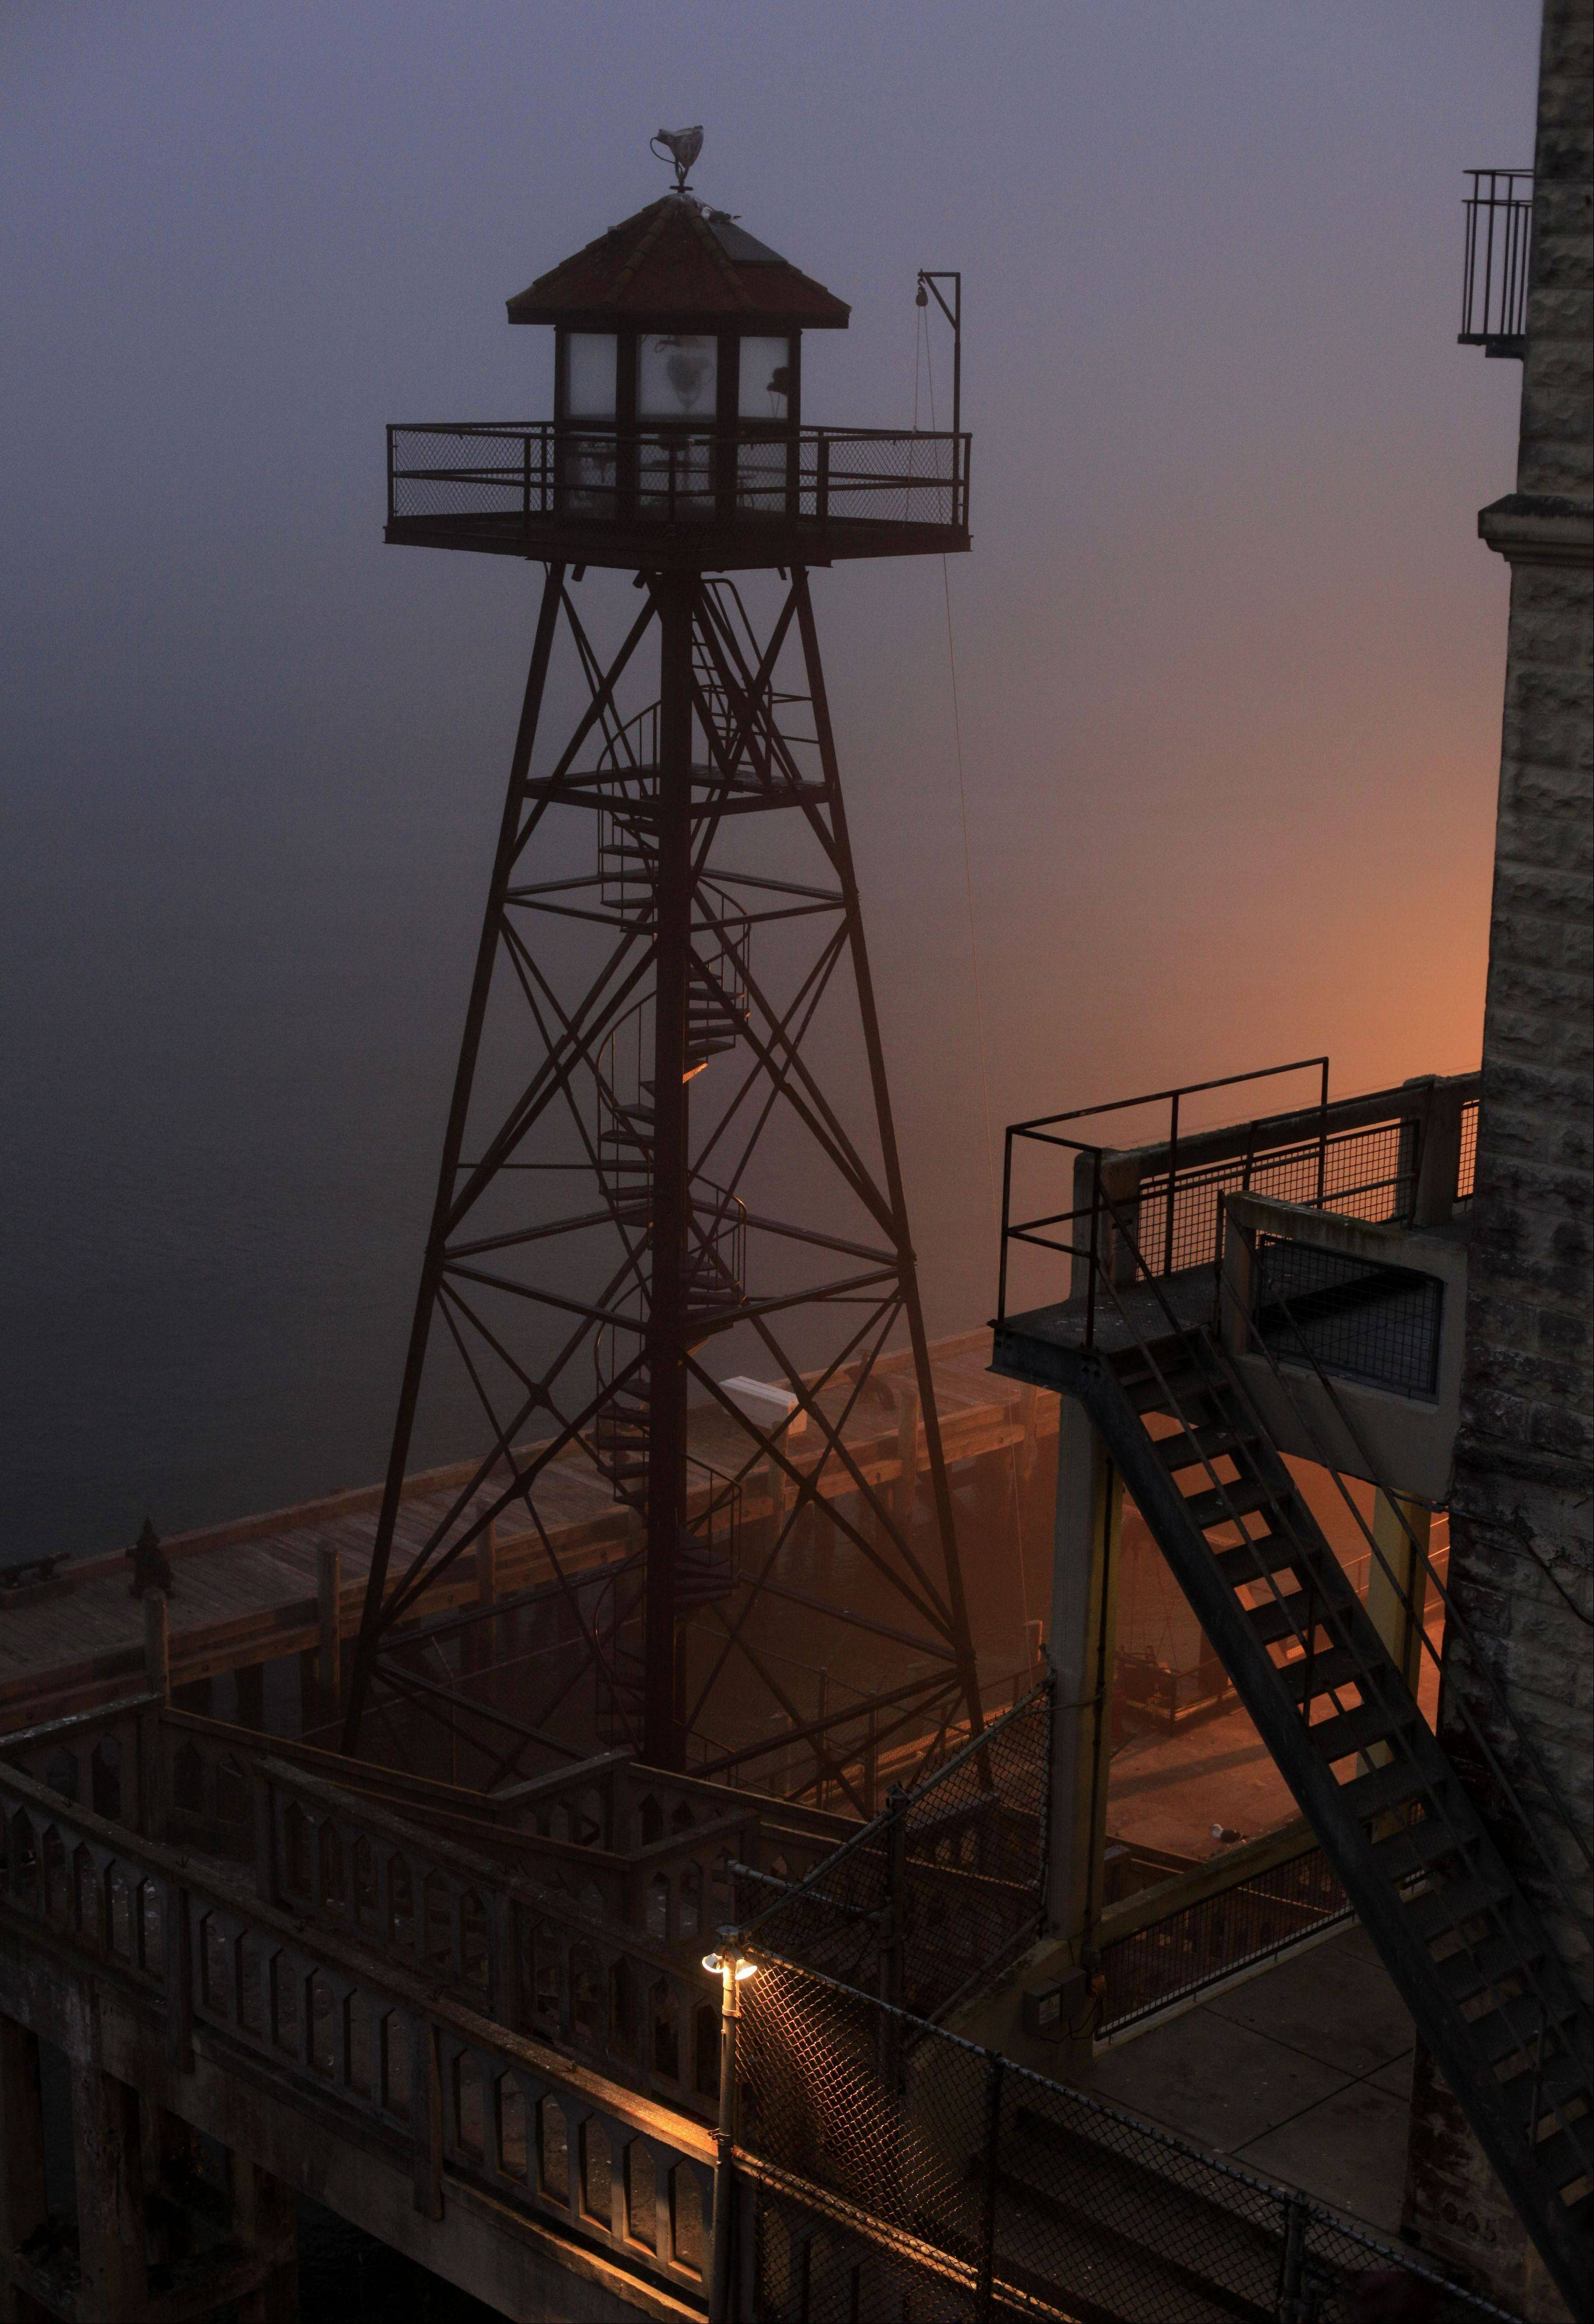 A guard tower stands near the dock during a night tour on Alcatraz Island. At dusk the island prison that housed some of the nation's most notorious criminals, including James Whitey Bulger and Al Capone, is often covered in fog, and the lamps on the grounds emit a ghostly glow.